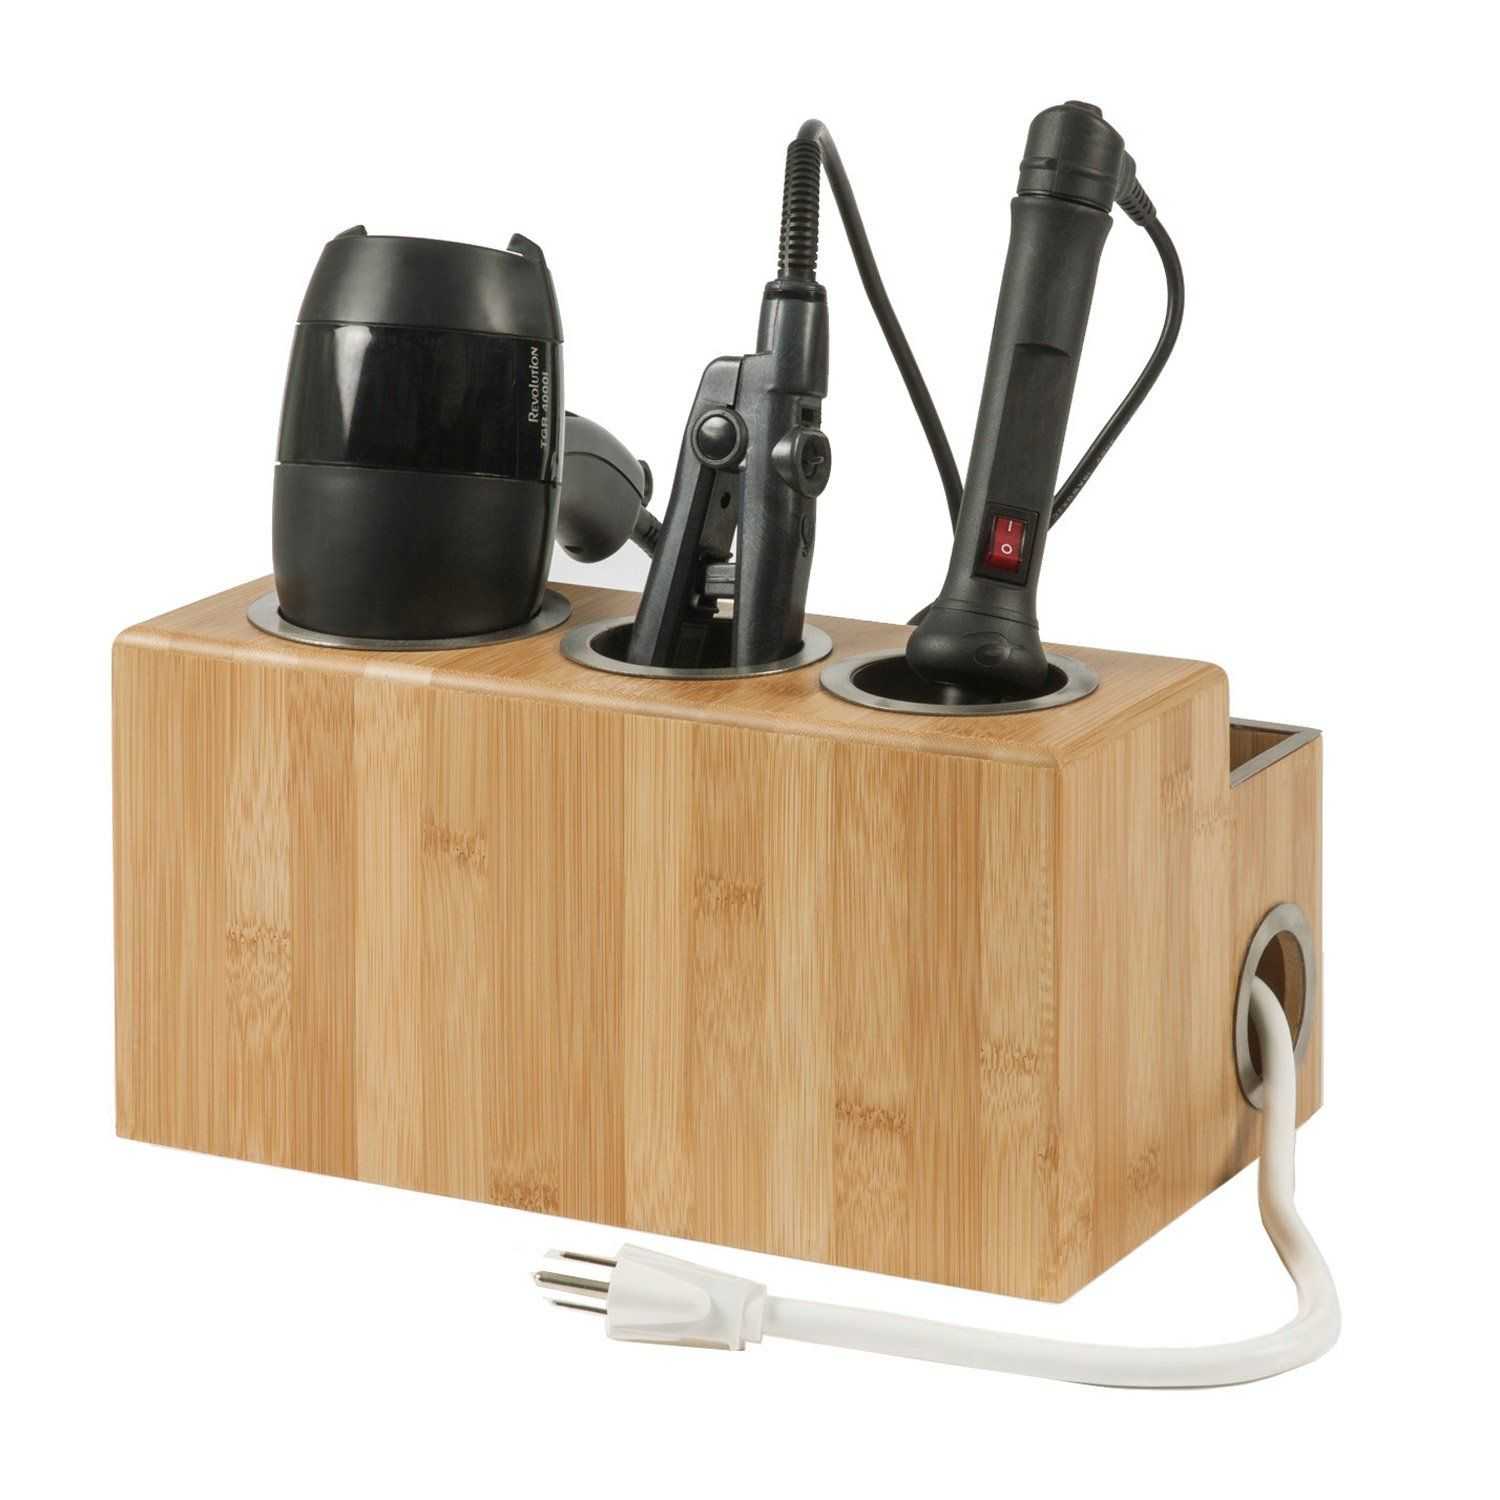 Hair Styling Station And Organizer In 2020 Hair Stations Contemporary Bathroom Accessories Styling Stations